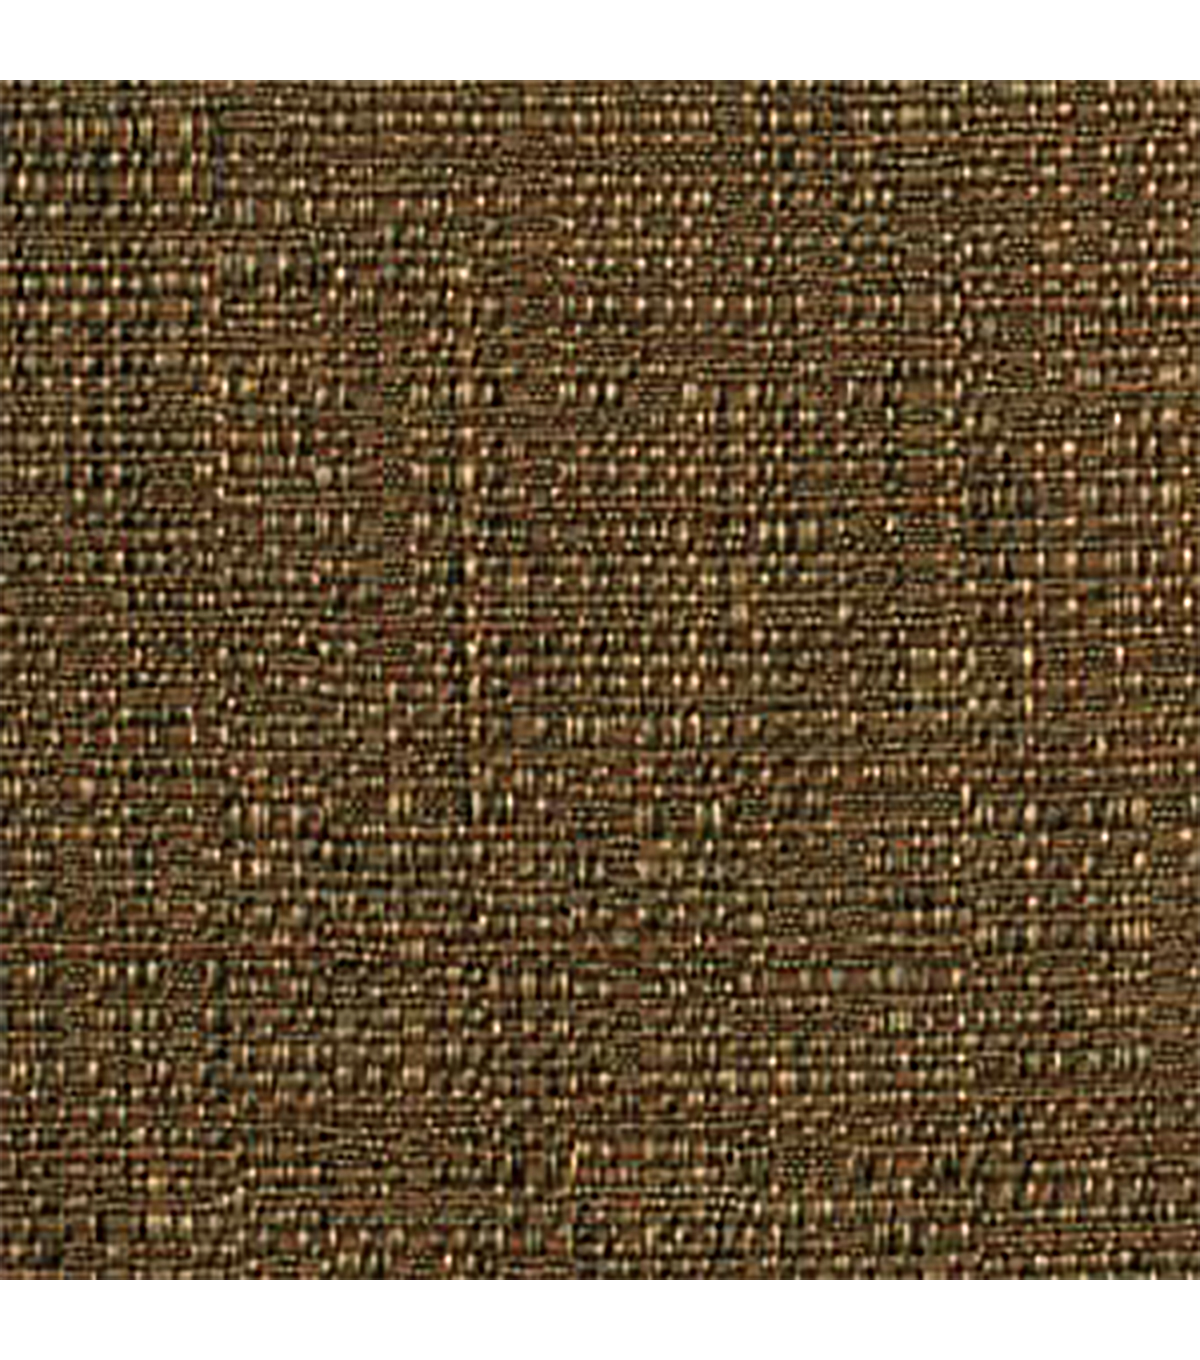 Home Decor 8\u0022x8\u0022 Fabric Swatch-Nezumi Bk / Bark